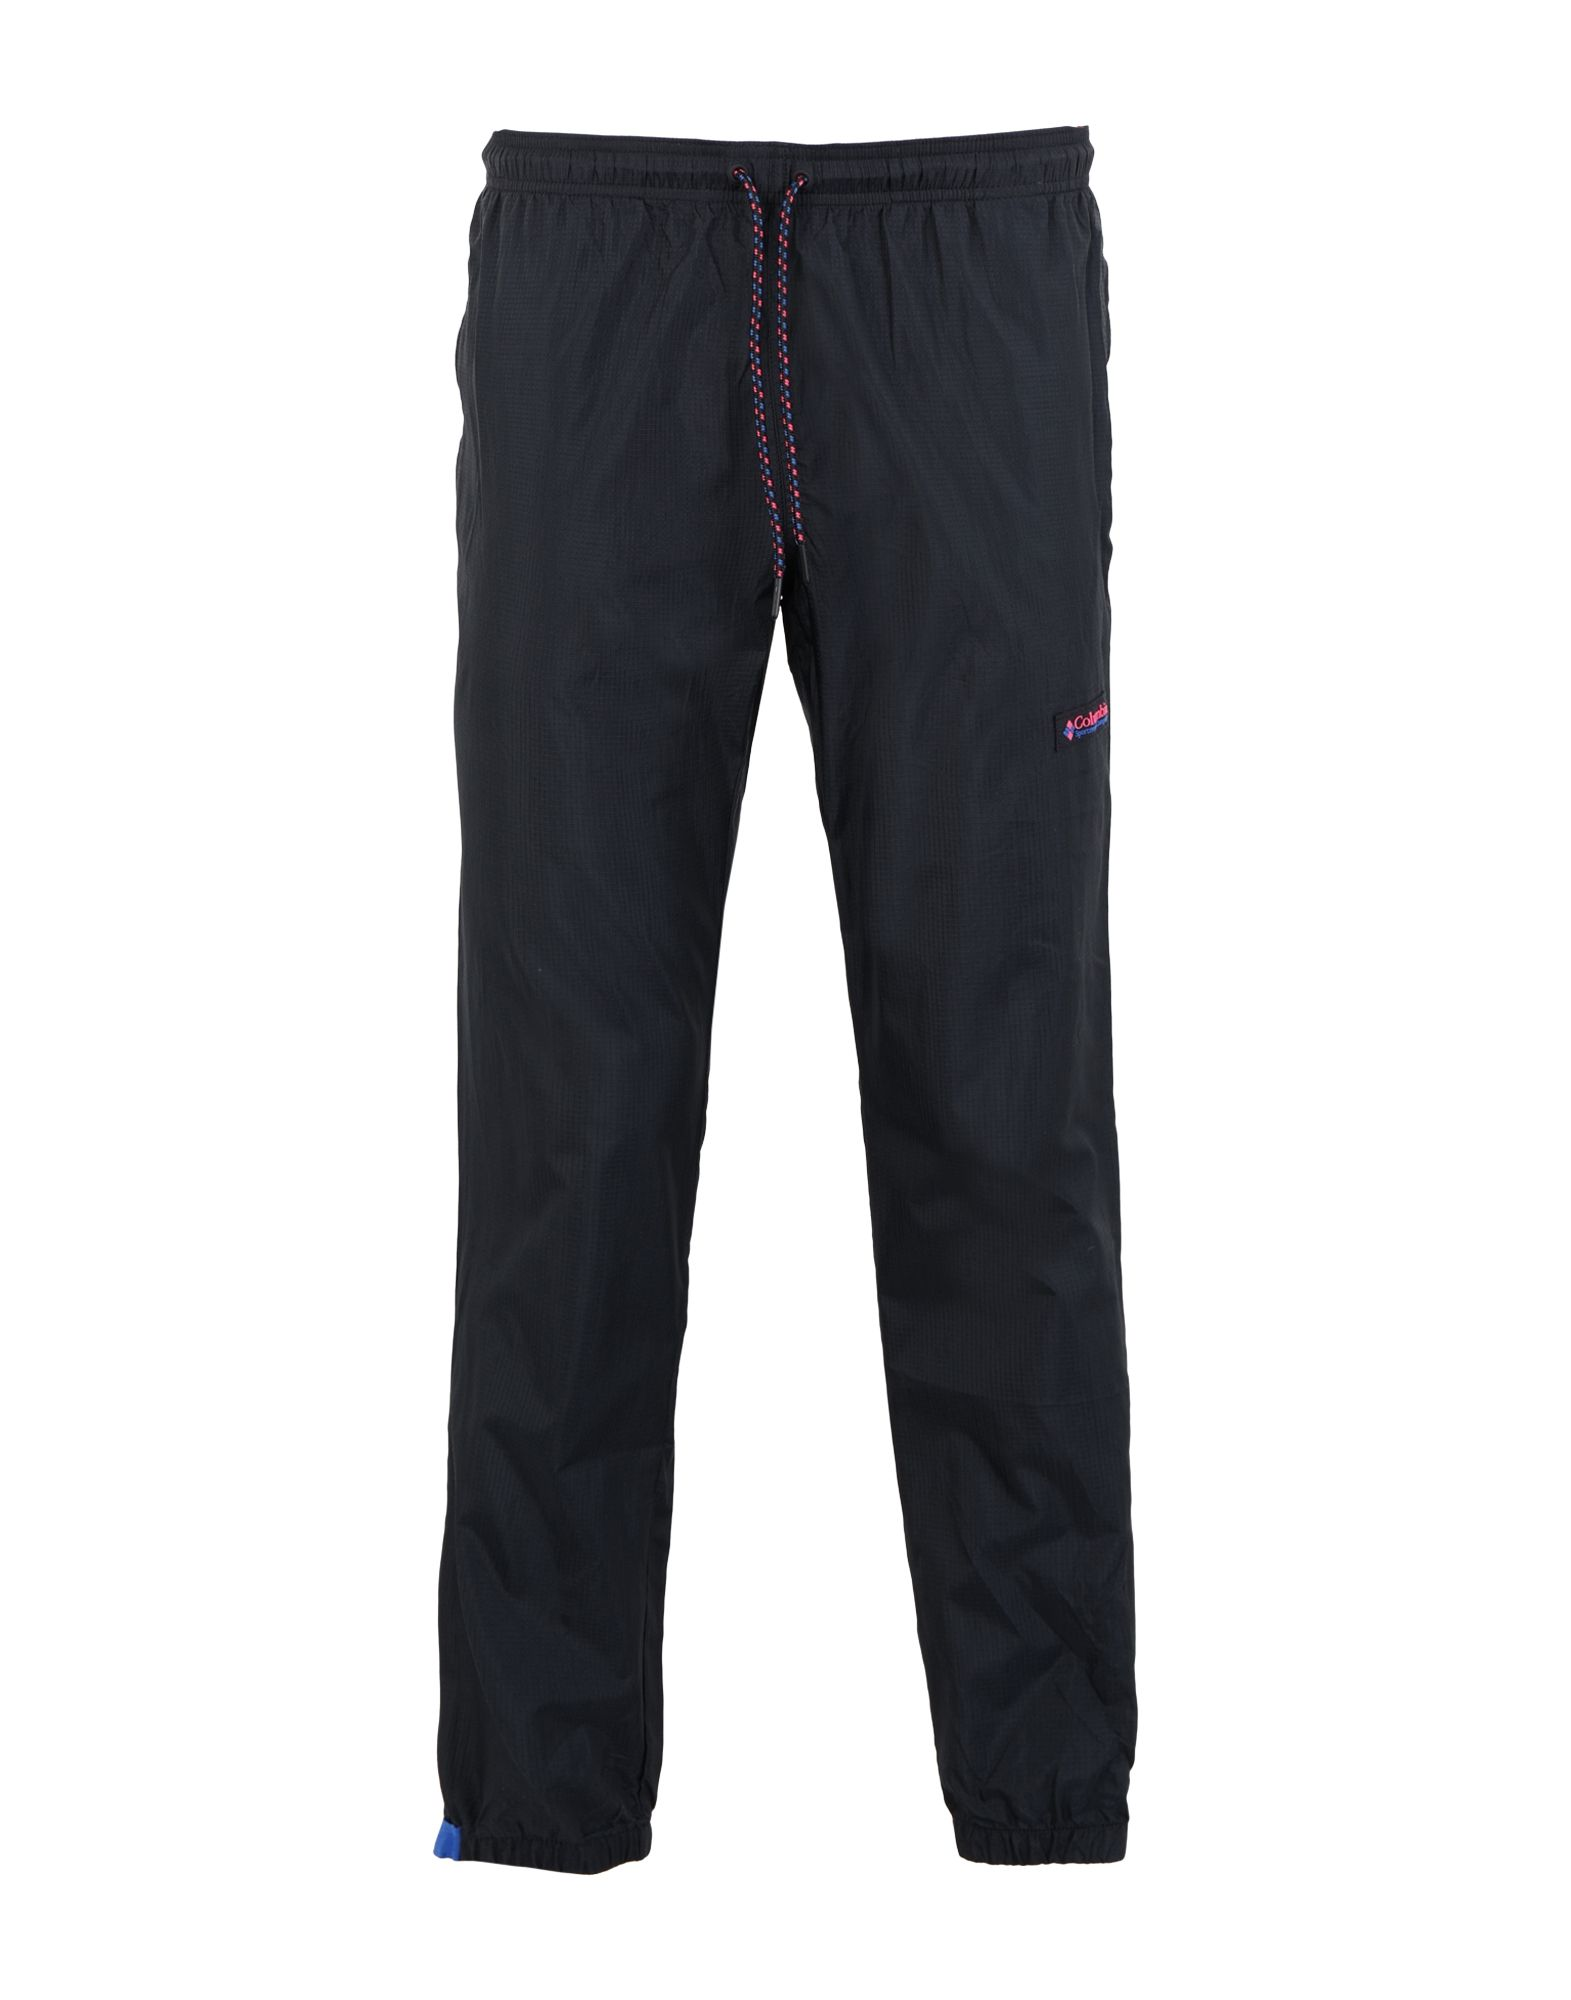 COLUMBIA Повседневные брюки брюки спортивные columbia columbia anytime outdoor boot cut pant